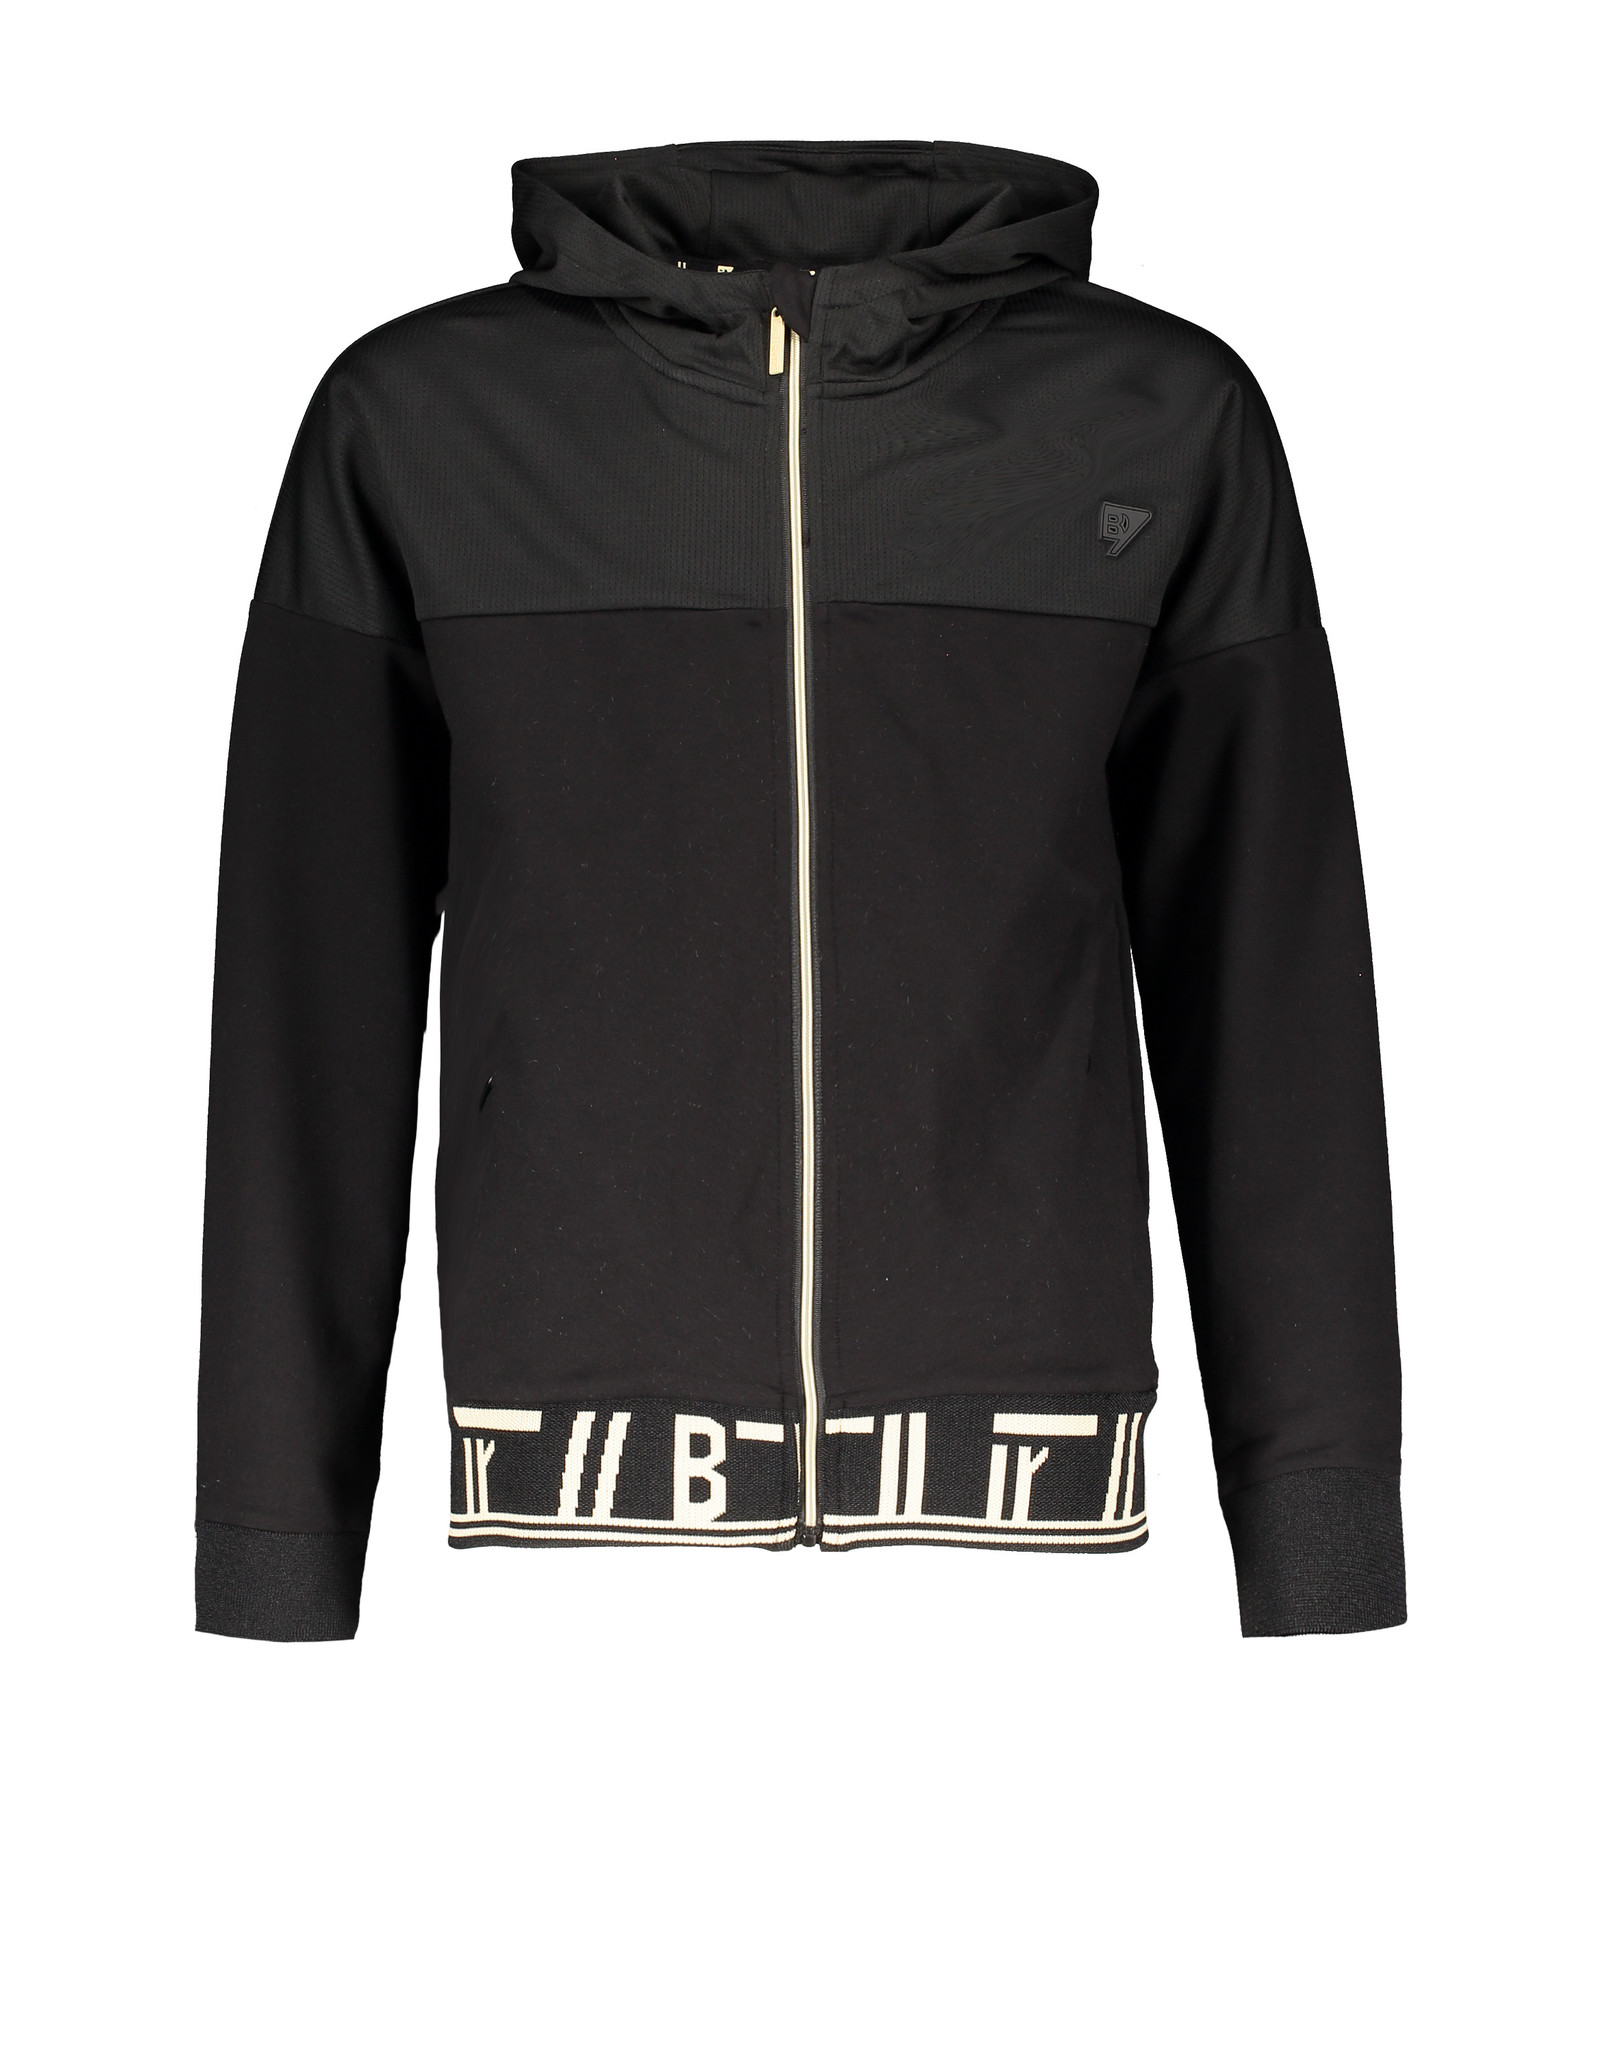 Bellaire Aikos hooded sweater